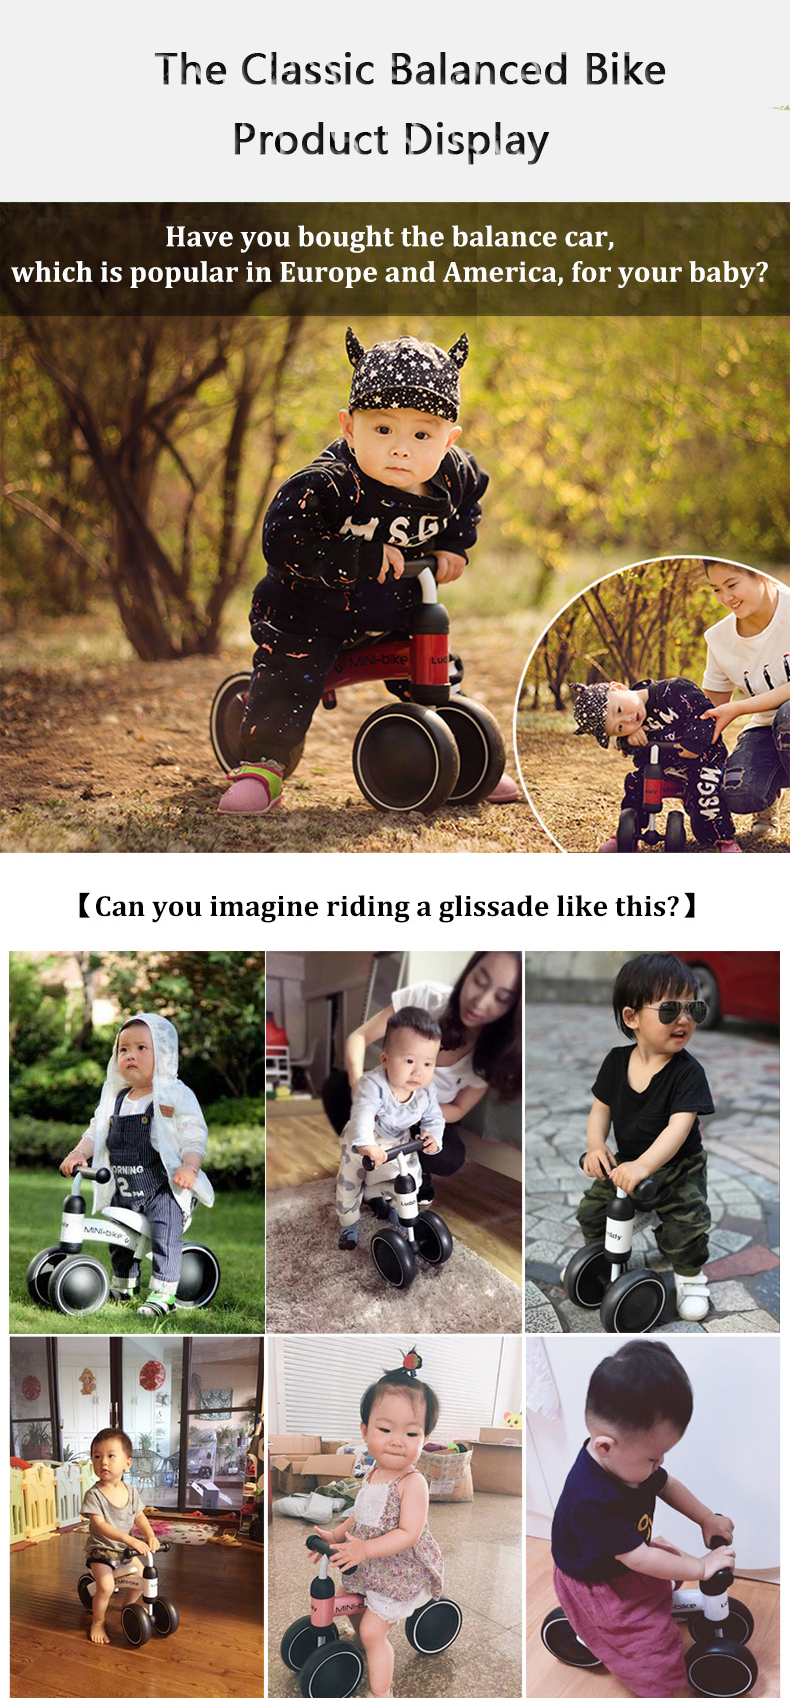 HTB1O2 OlvJNTKJjSspoq6A6mpXas New brand children's bicycle balance scooter walker infant 1-3years Tricycle for driving bike gift for newborn Baby buggy